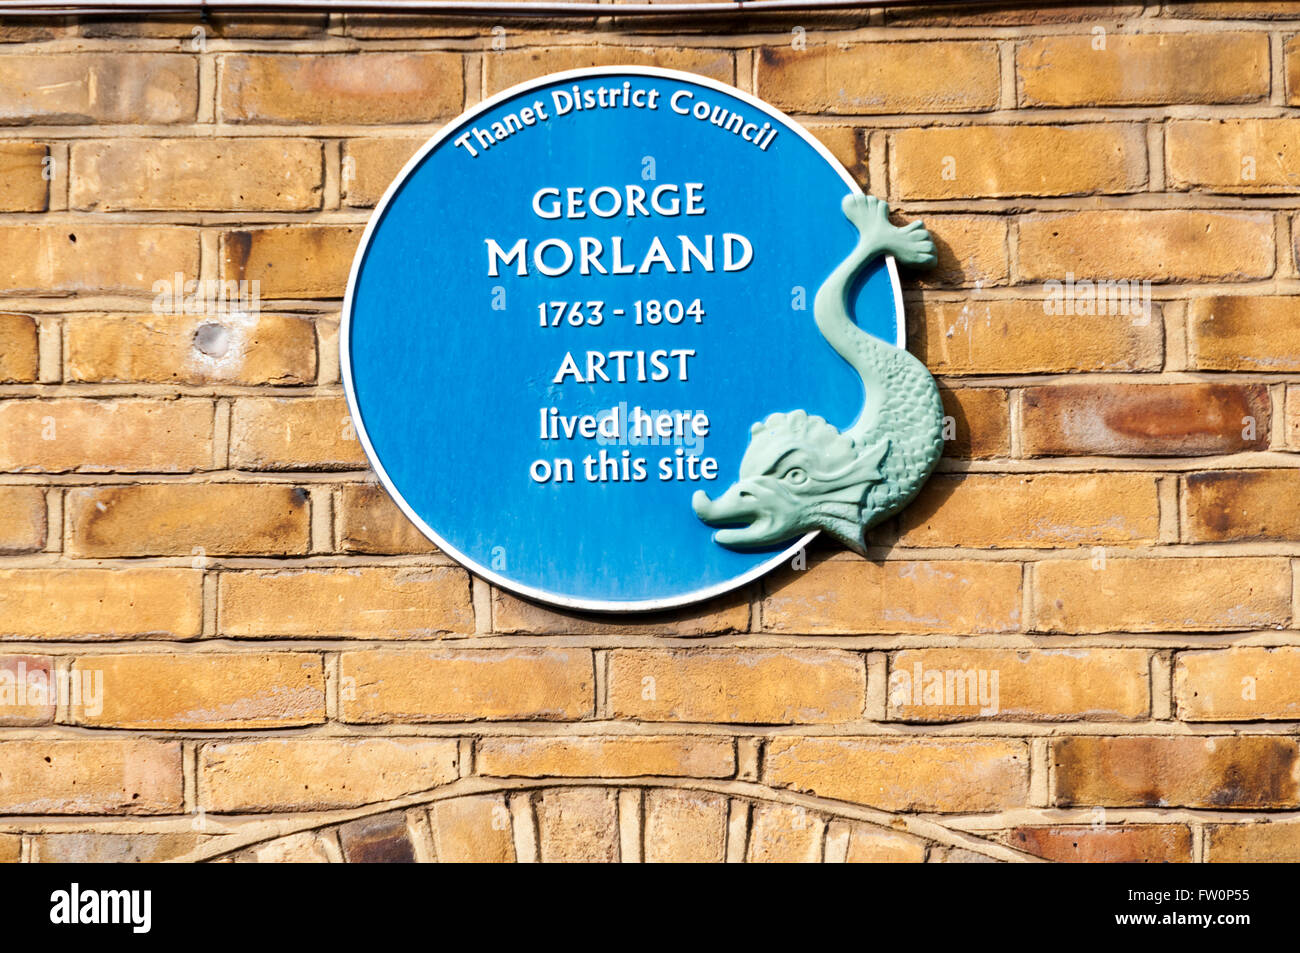 Blue plaque on the site of the former home of the artist George Morland in Love Lane, Margate, Kent, England. - Stock Image